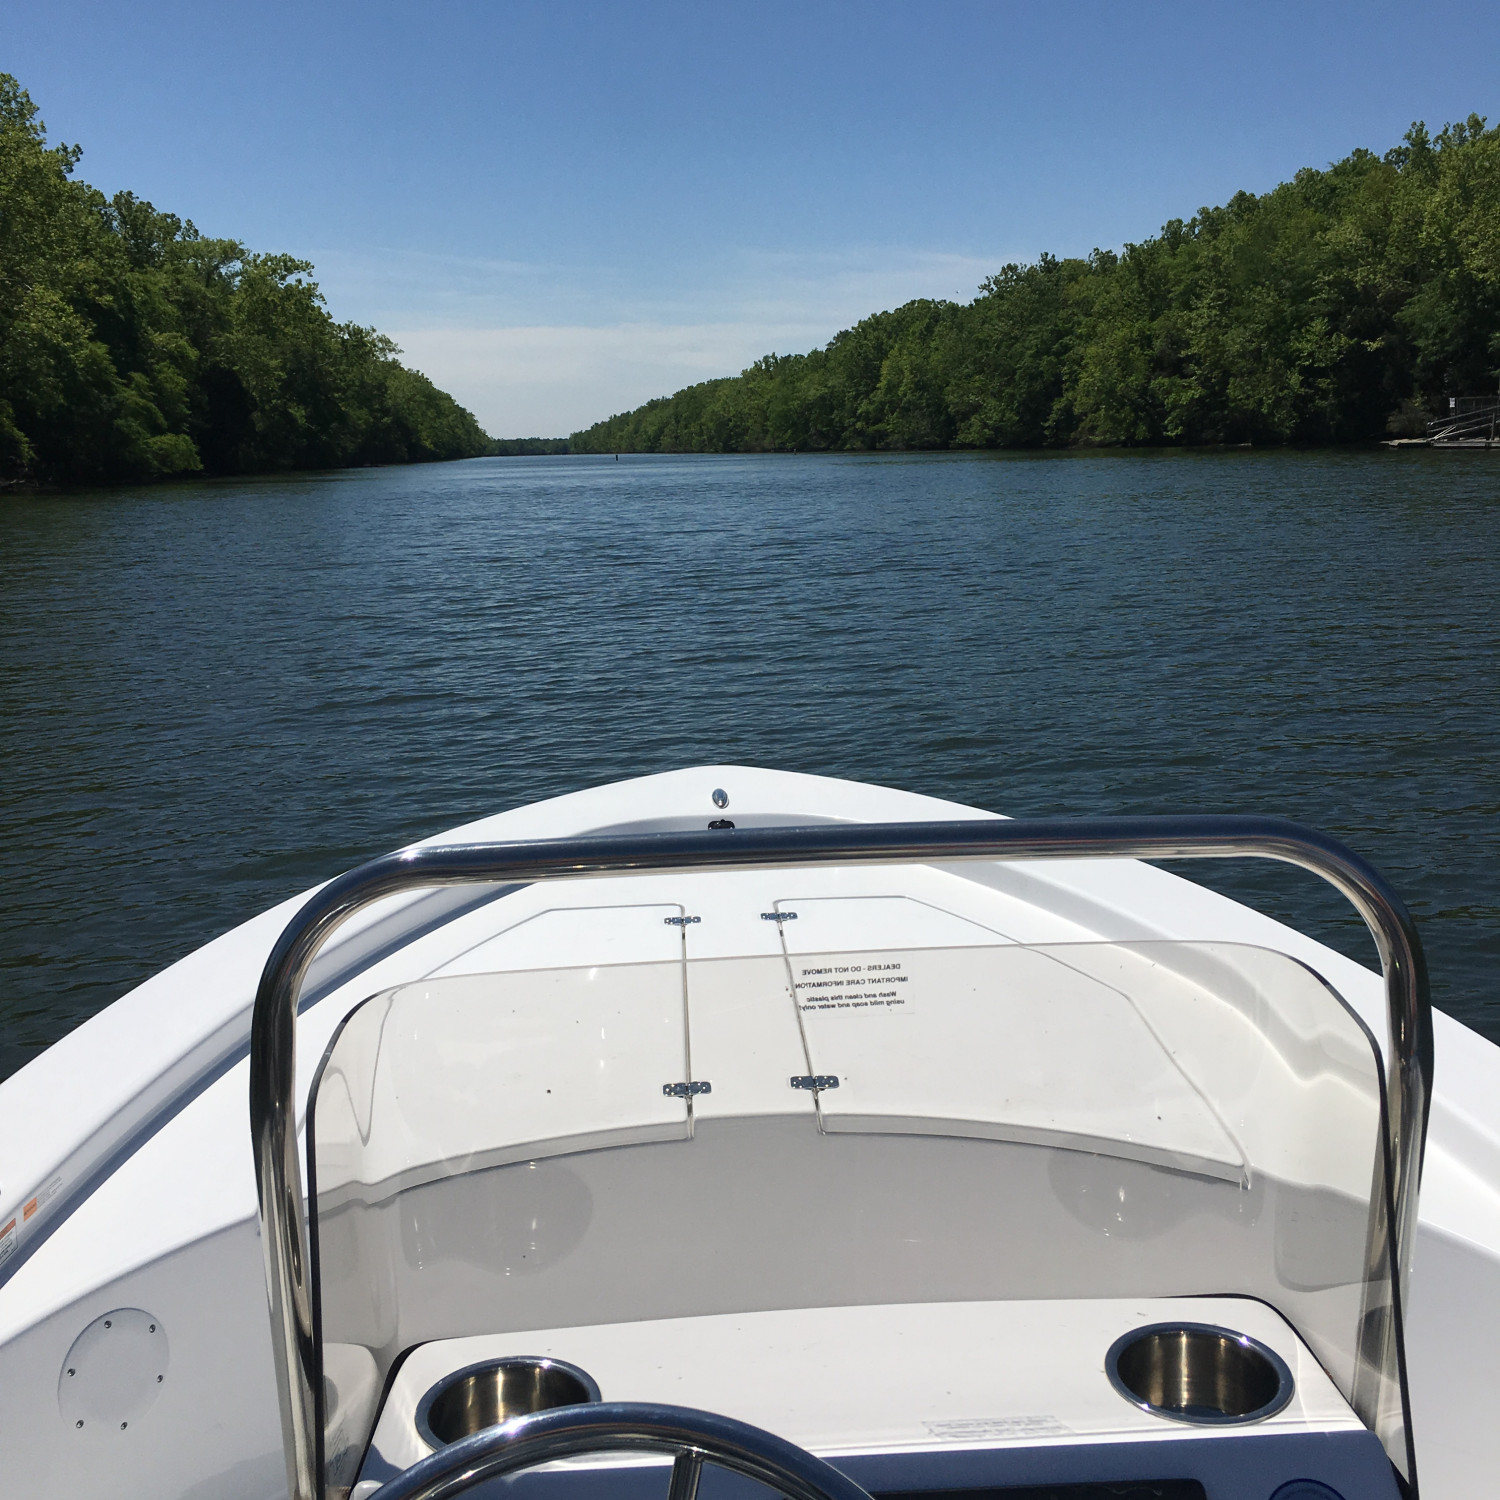 Title: Cooper River Cruise - On board their Sportsman Island Bay 20 Bay Boat - Location: Moncks Corner, SC. Participating in the Photo Contest #SportsmanMay2018